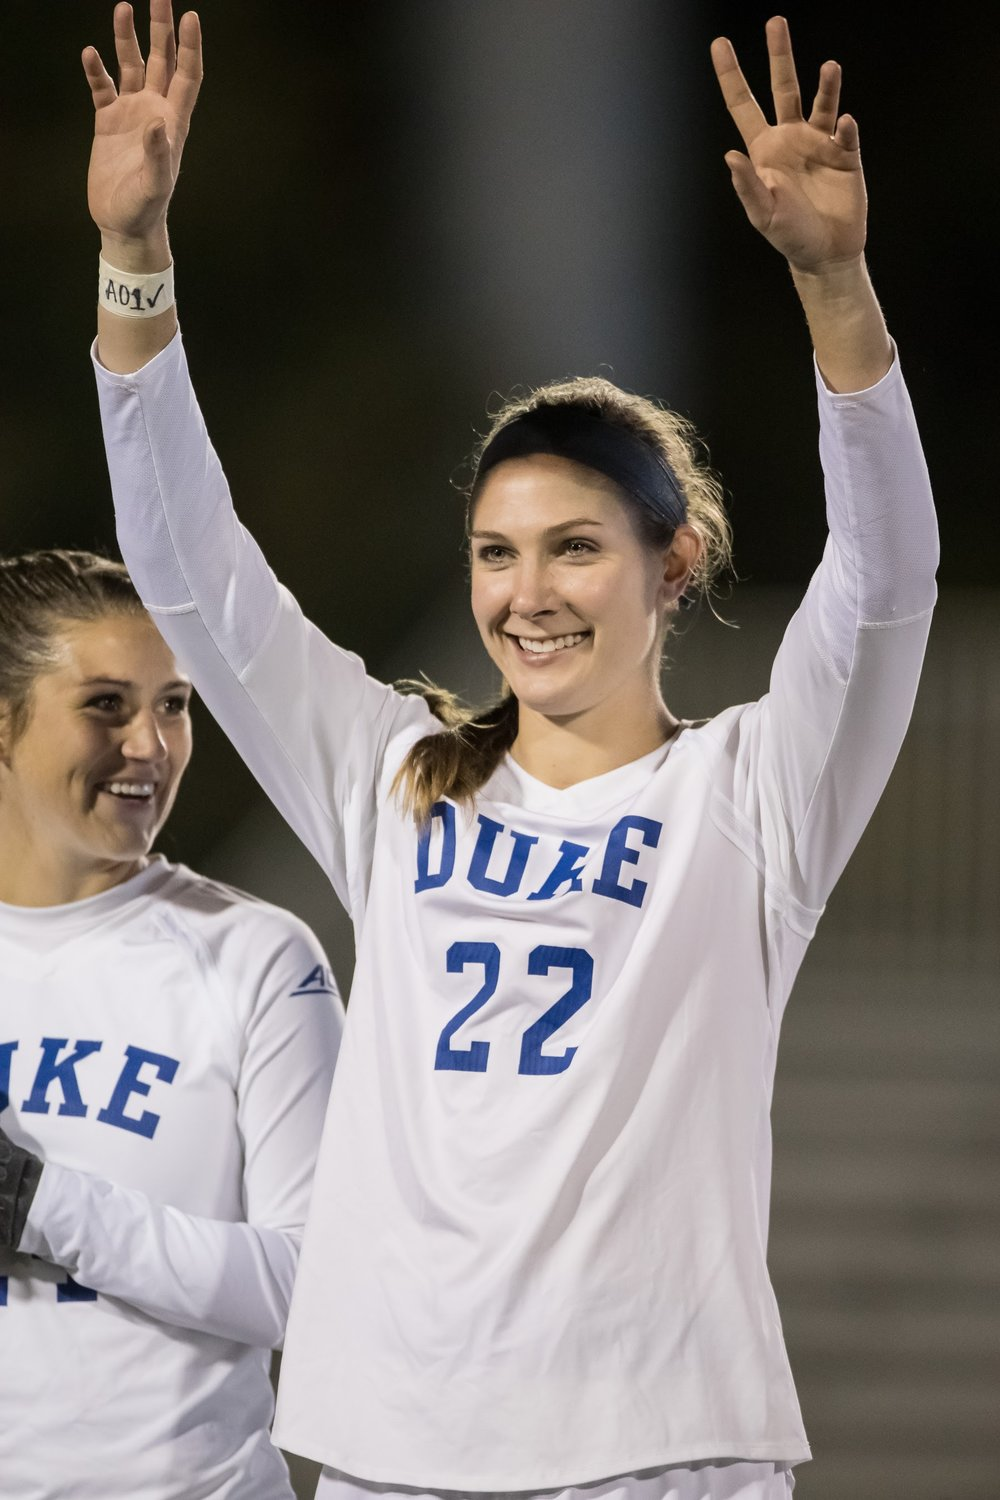 Malinda Allen - I grew up in Memphis, TN. I went to Duke University and played on the women's soccer team for 5 years. I graduated from undergrad in May 2017. Because of redshirting my sophomore year, I had an extra year of eligibility which I used to complete a Master of Management at Duke's Fuqua School of Business and graduated in May. I am currently living in Dublin, Ireland playing for Shelbourne Ladies FC. Besides soccer I am an entrepreneur, I love to cook and look for new recipes. I like a good book and spending time with friends outdoors.